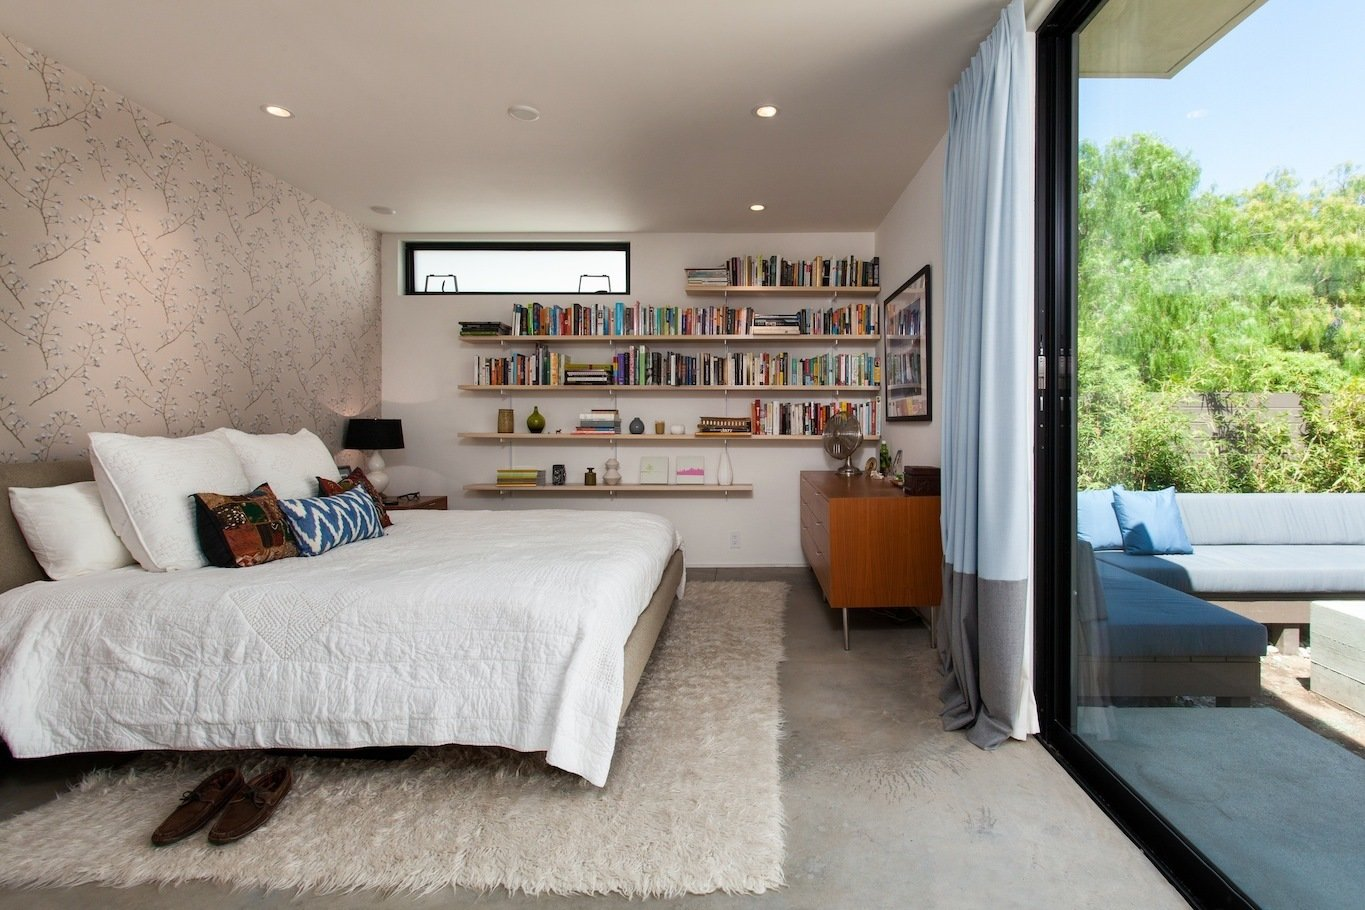 Bedroom at rear yard opens to patio  Ashland Residence by Hsu McCullough